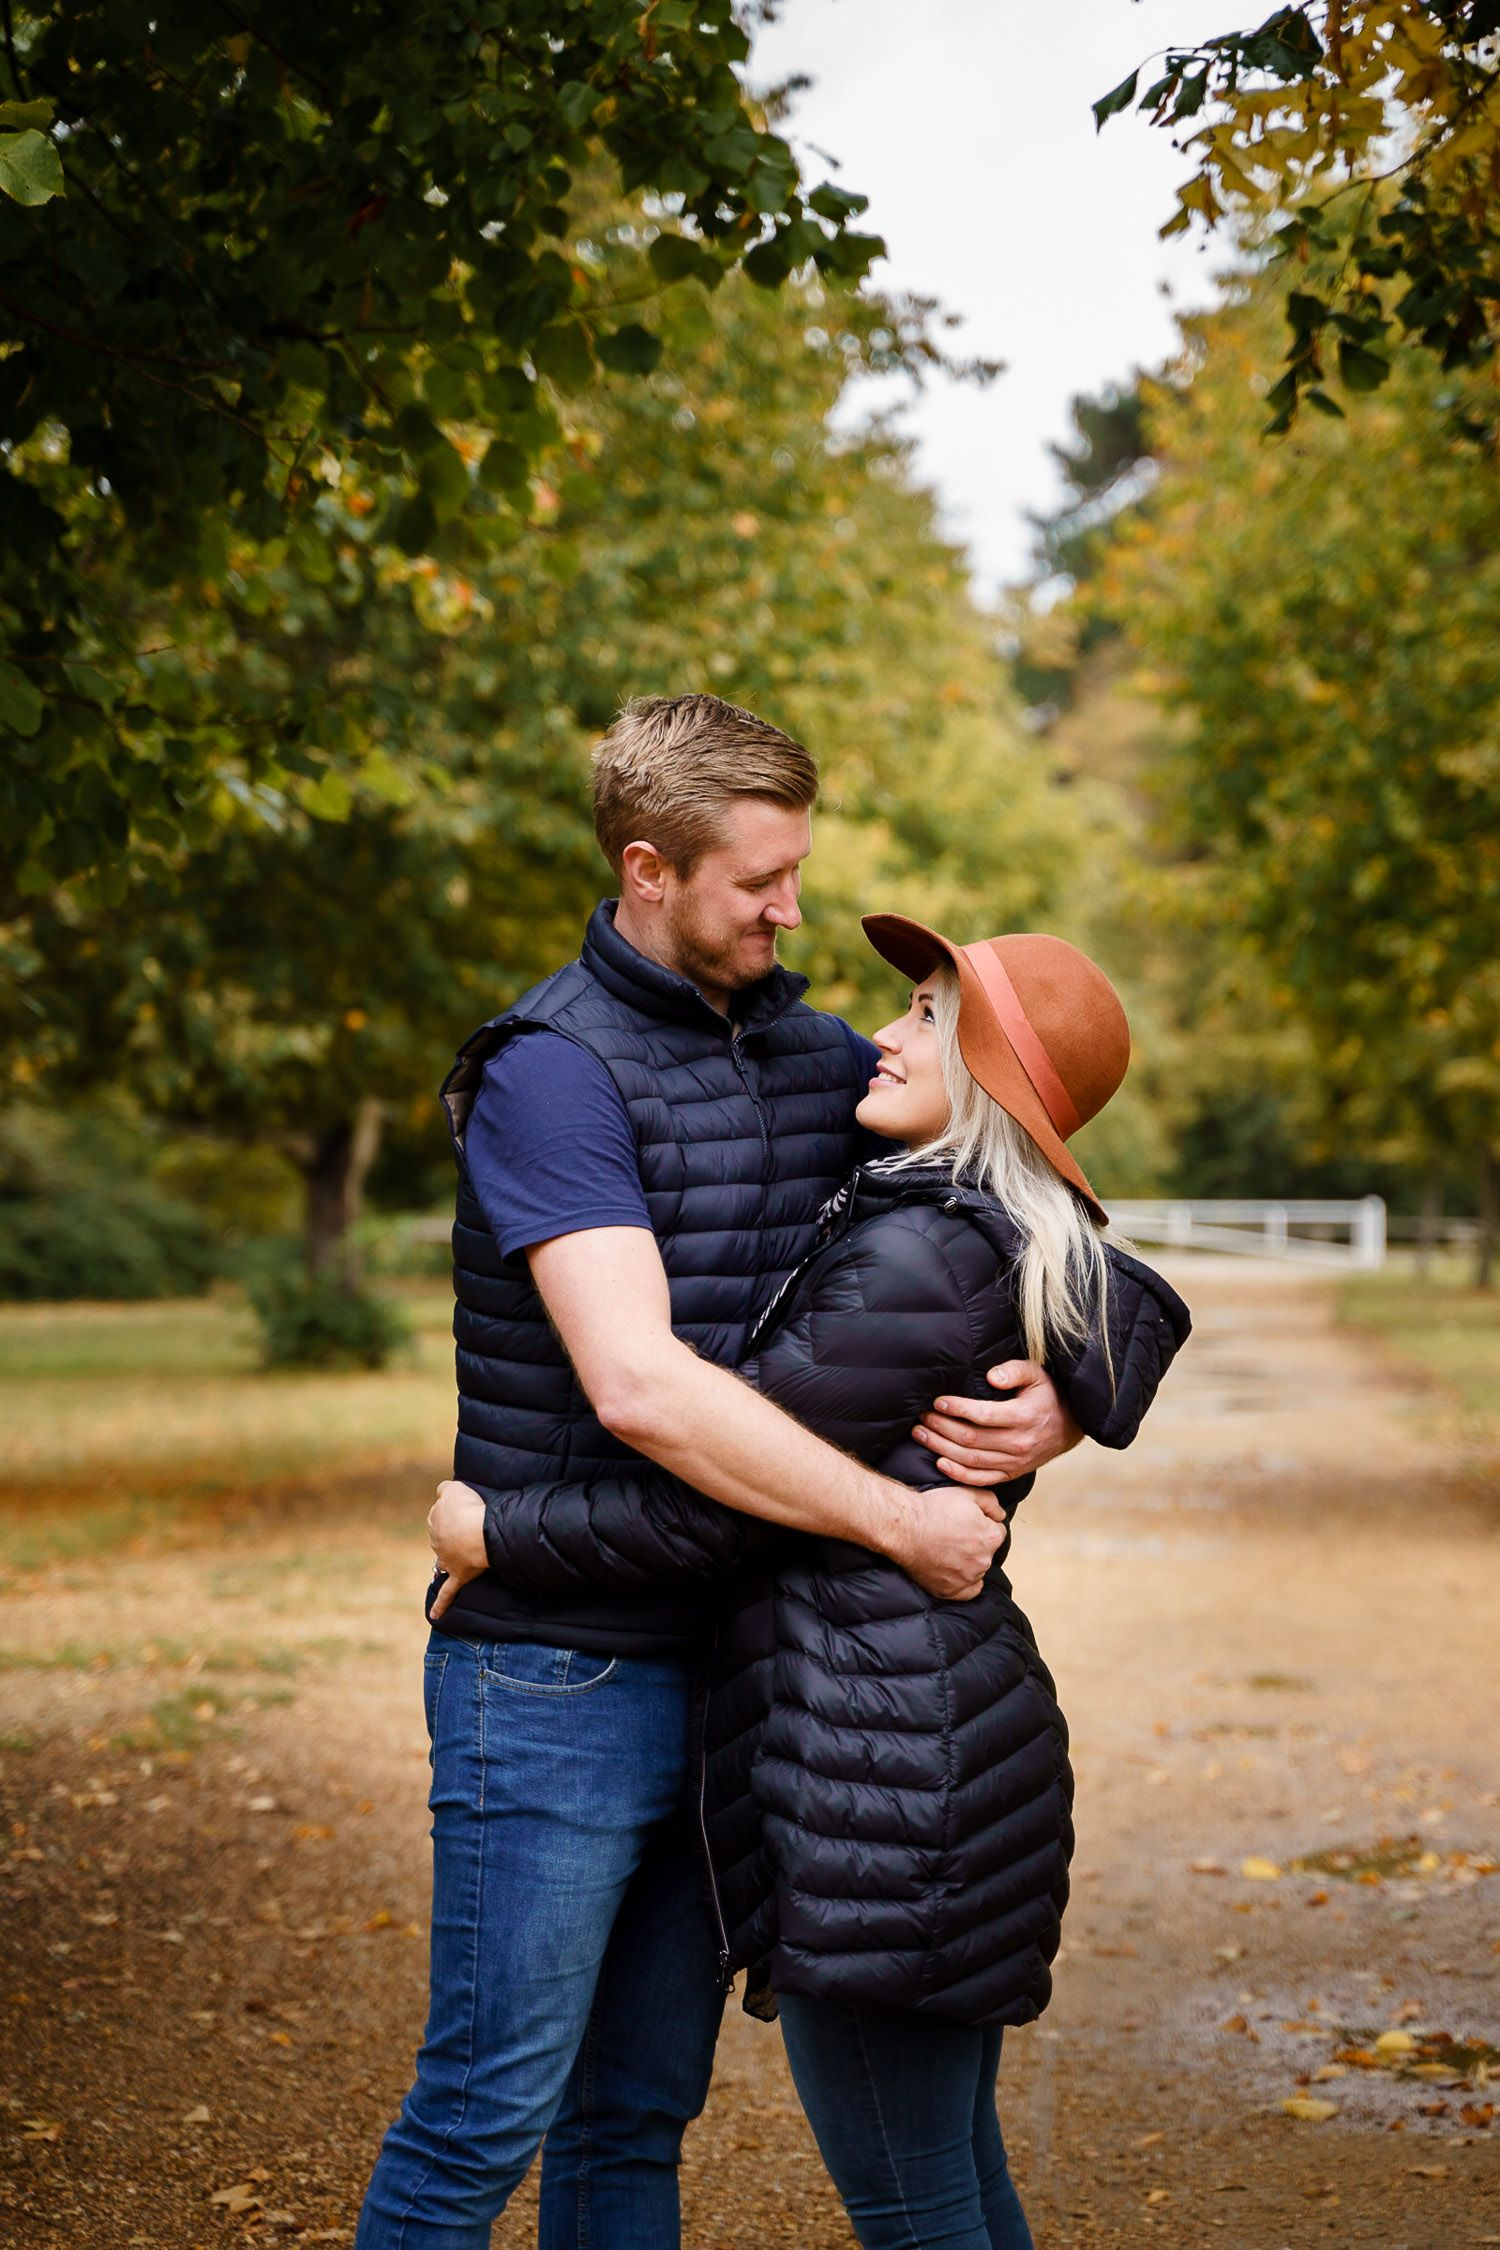 A heterosexual couple cuddle in a local park in autumn. Katherine and her Camera engagement photoshoot.